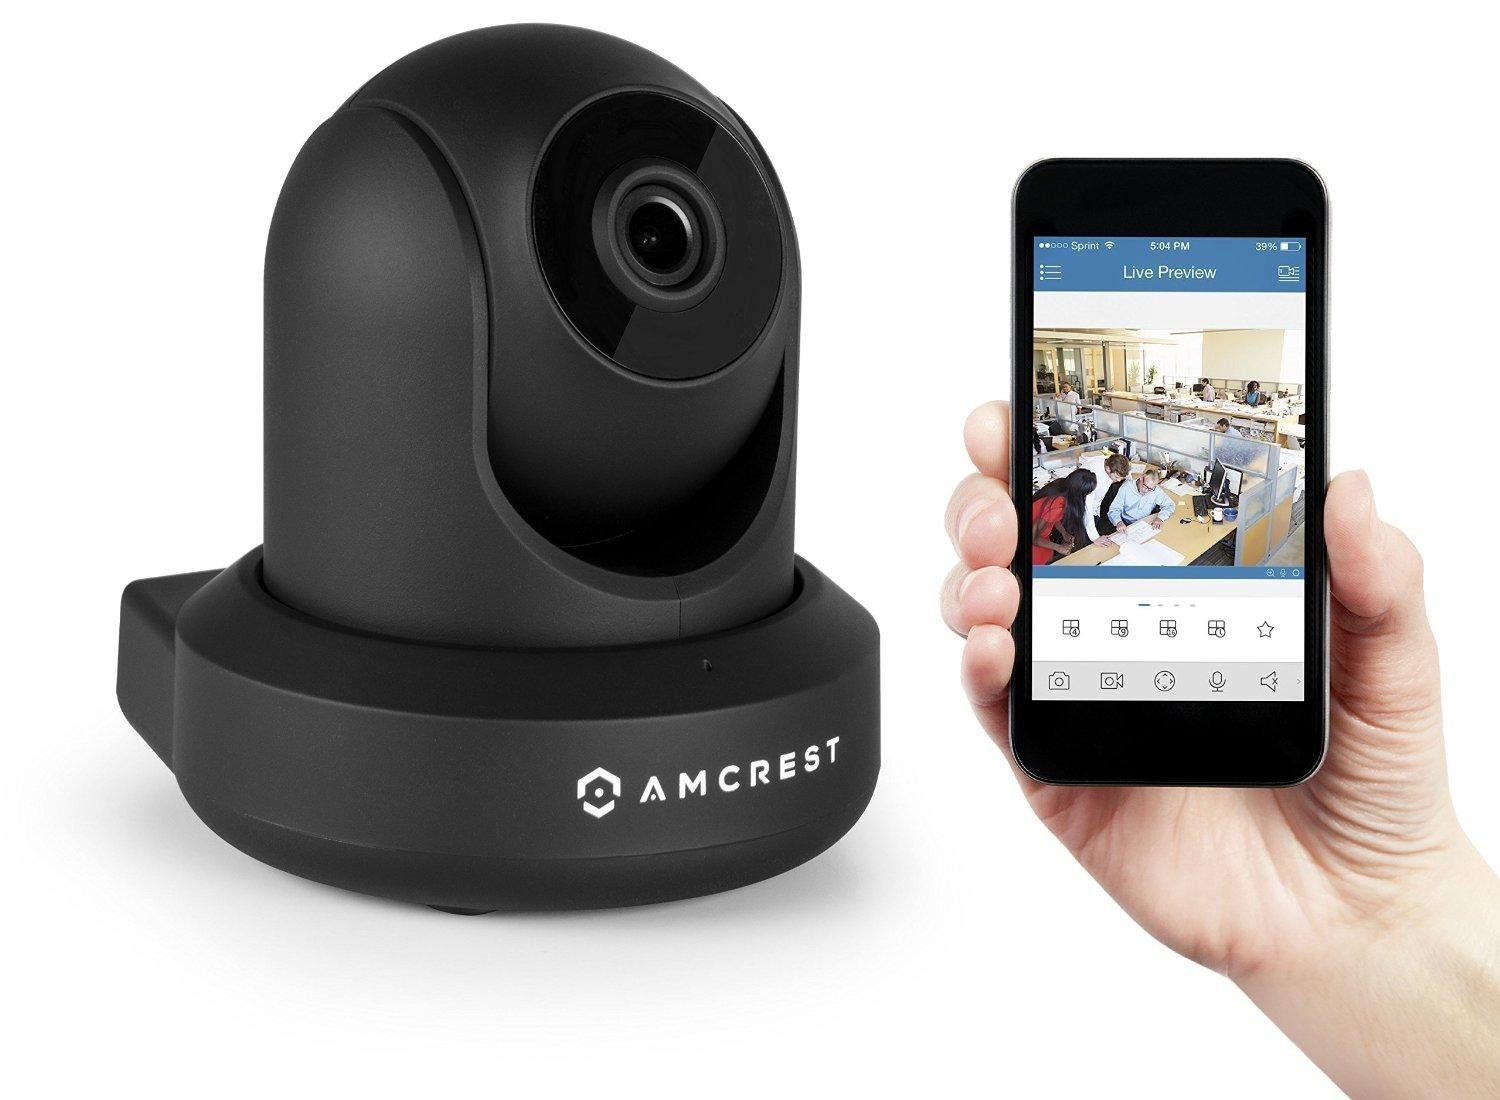 Amcrest ProHD 1080P WiFi Camera 2MP (1920TVL) Indoor Pan/Tilt Security Wireless IP Camera IP2M-841B (Black) by Amcrest (Image #3)